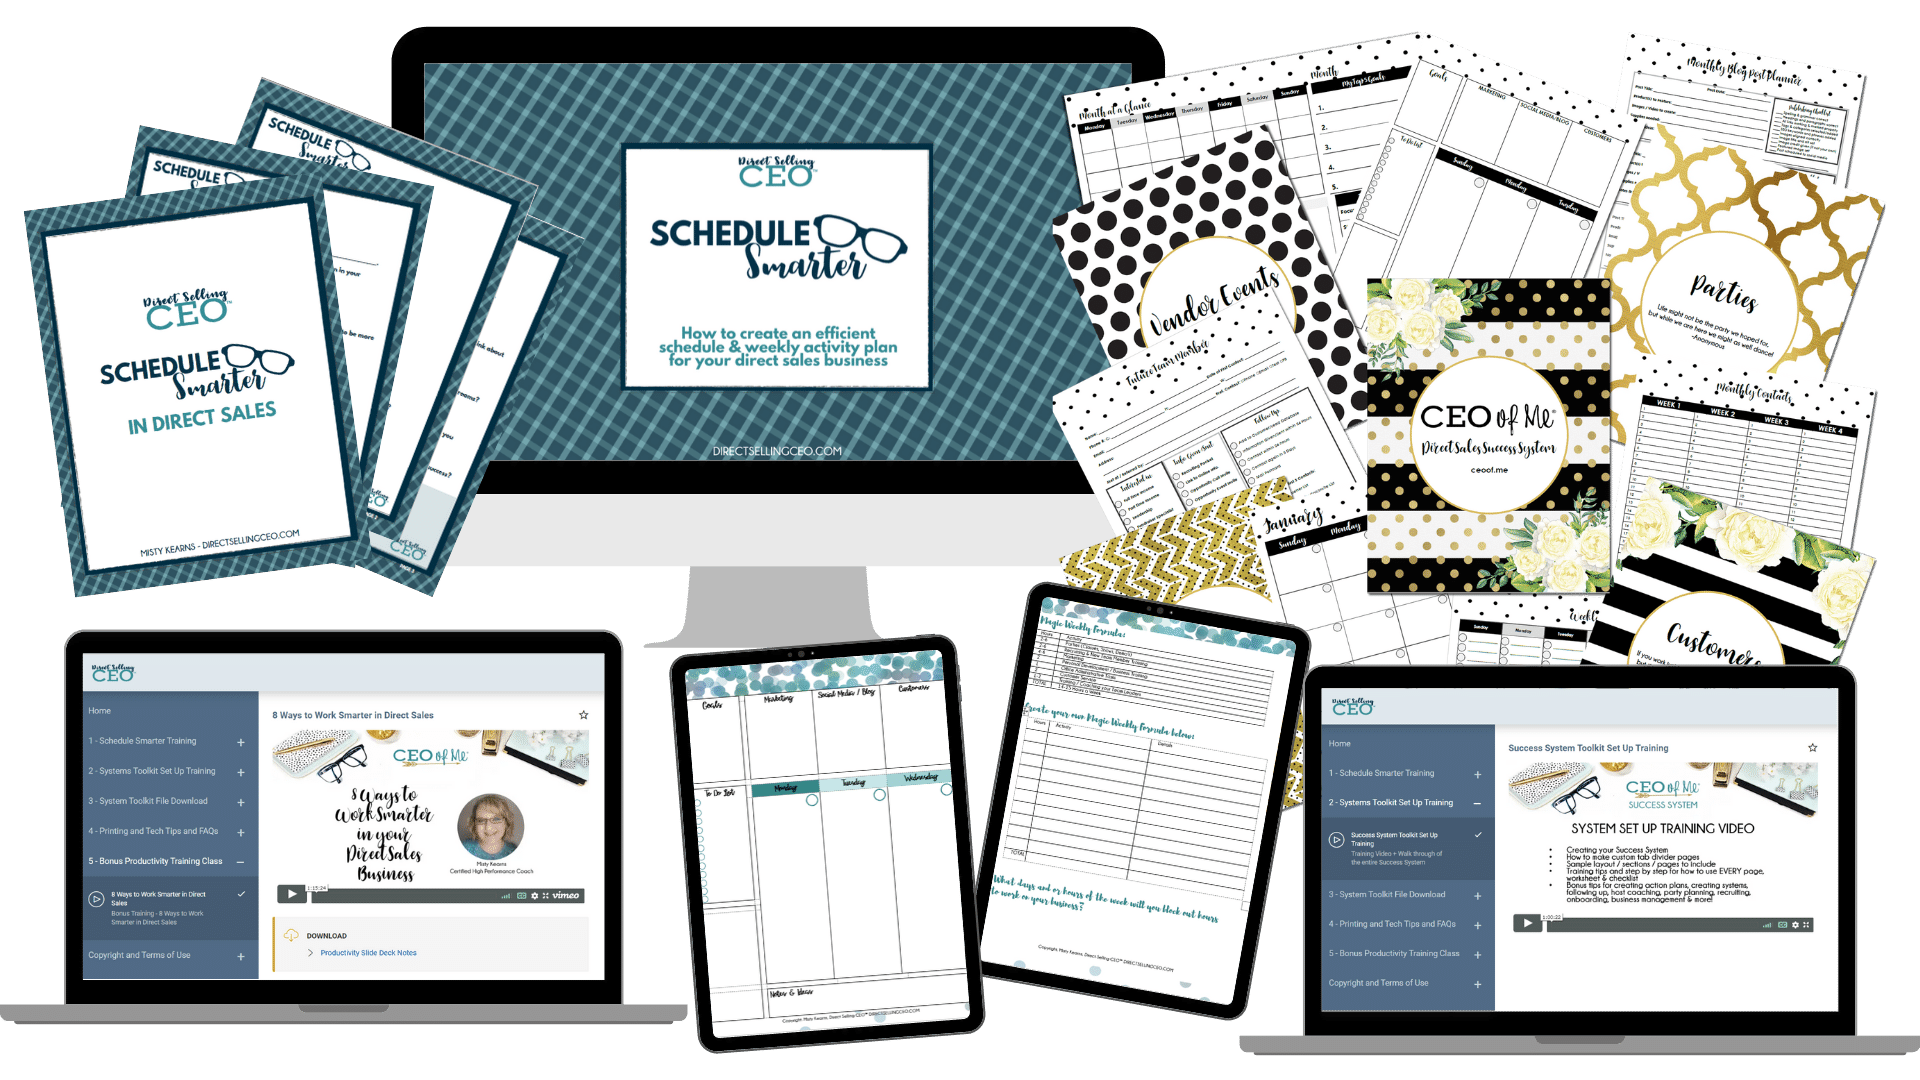 Direct Sales Schedule Smarter System Toolkit Planner